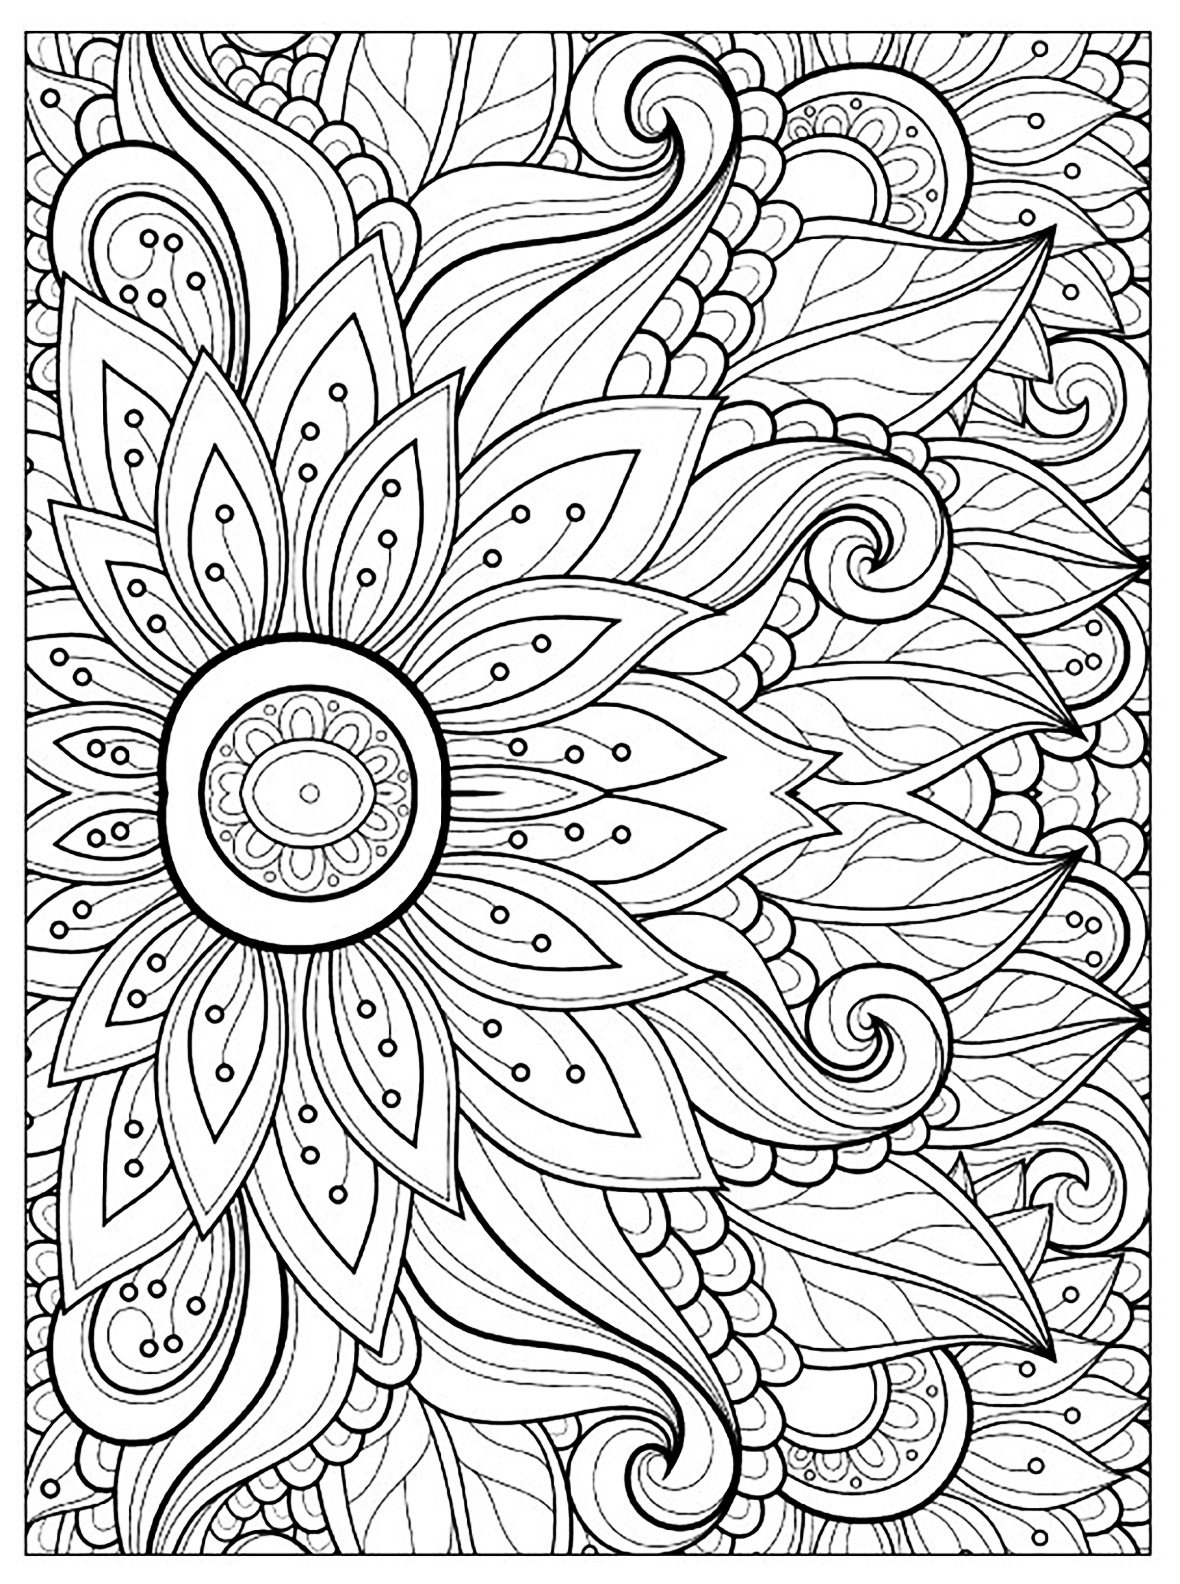 Flowers to download for free - Flowers Kids Coloring Pages